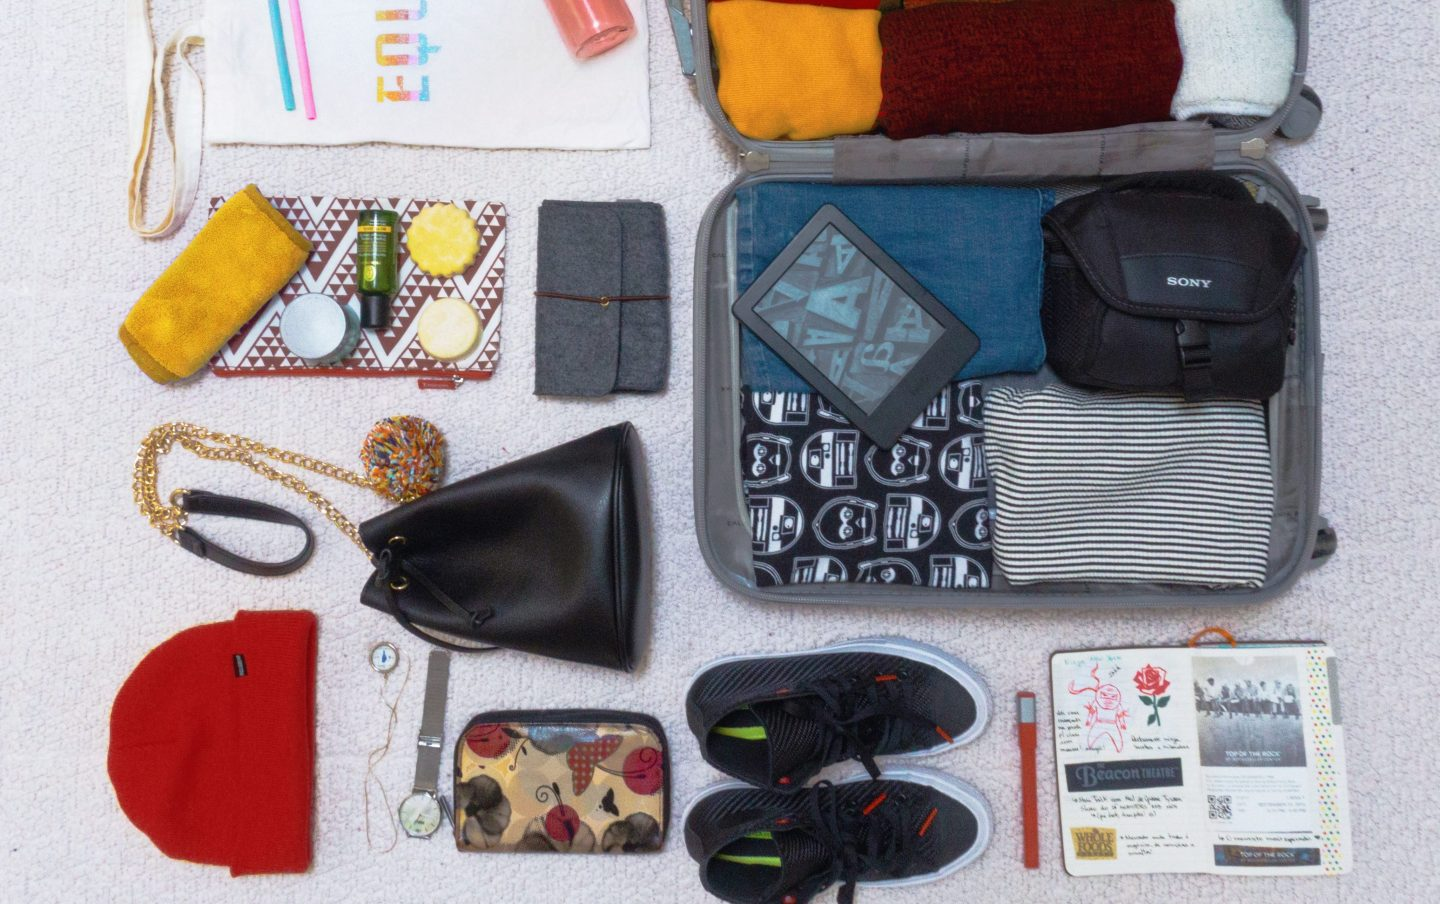 How to pack light and be an eco-friendly traveler